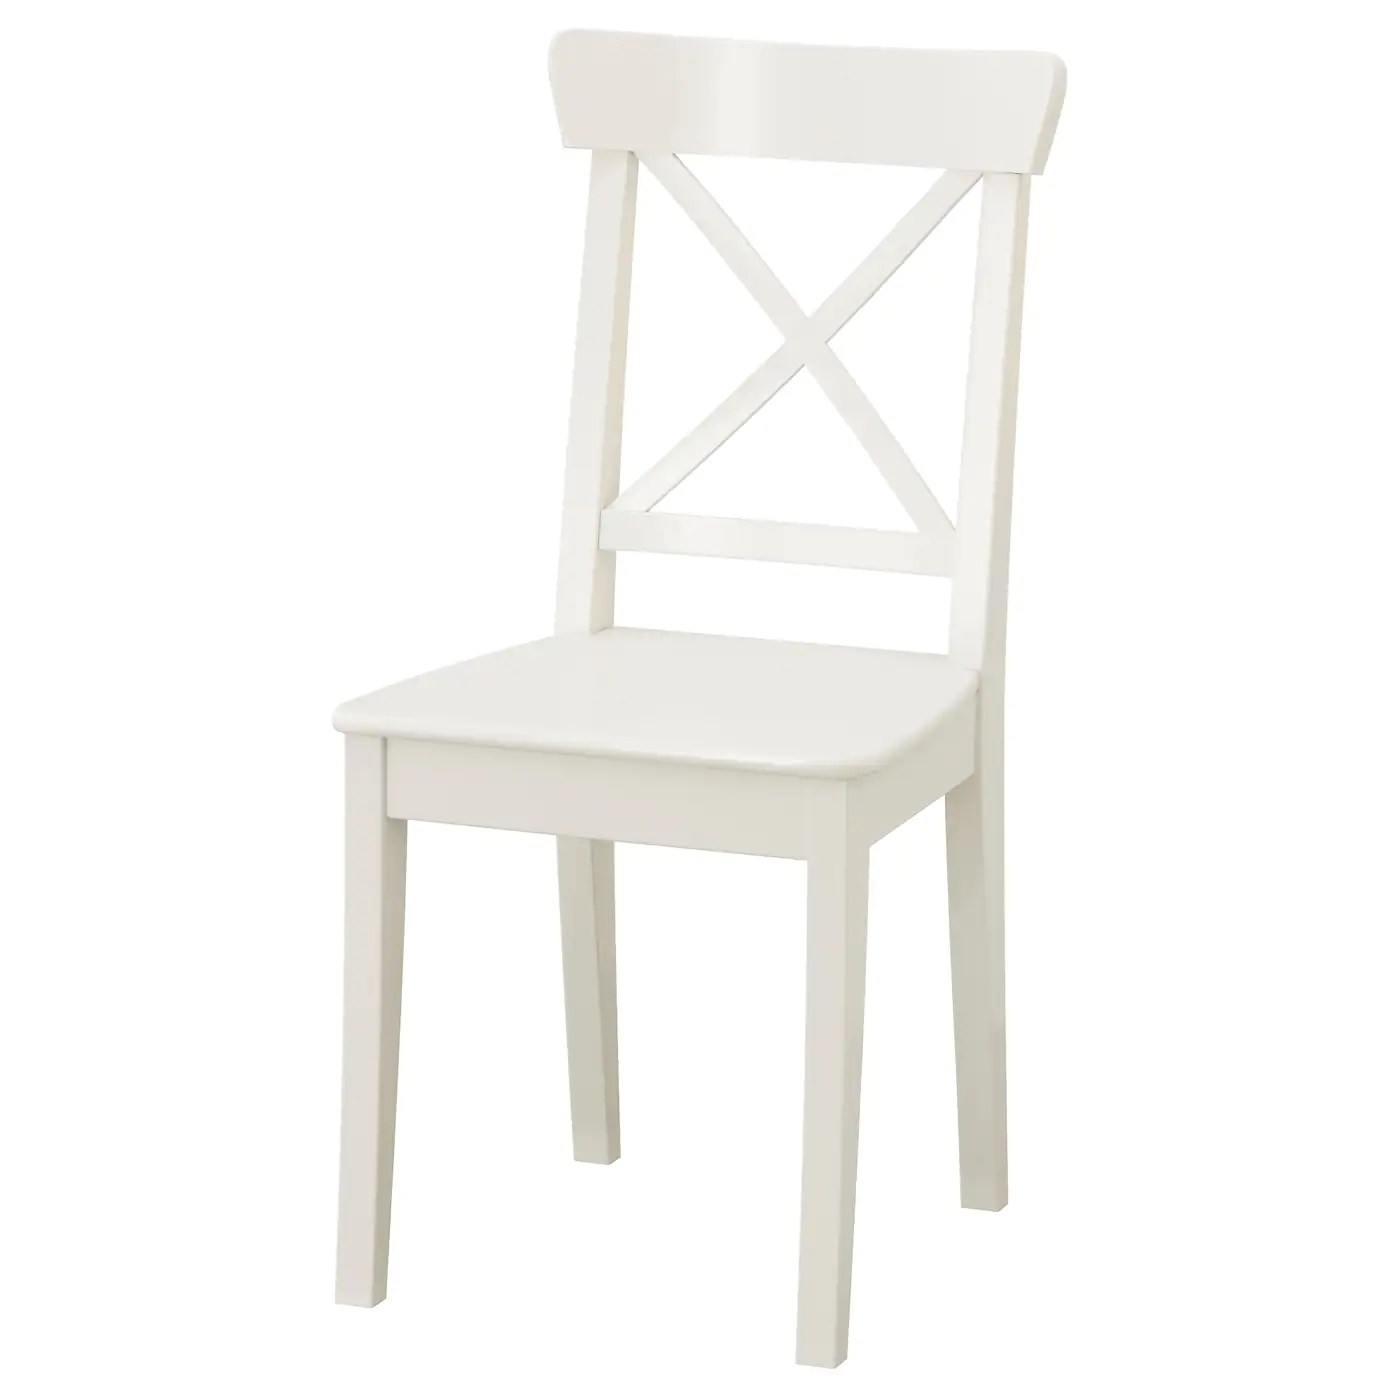 cross back dining chairs white big circle chair ingolf ikea